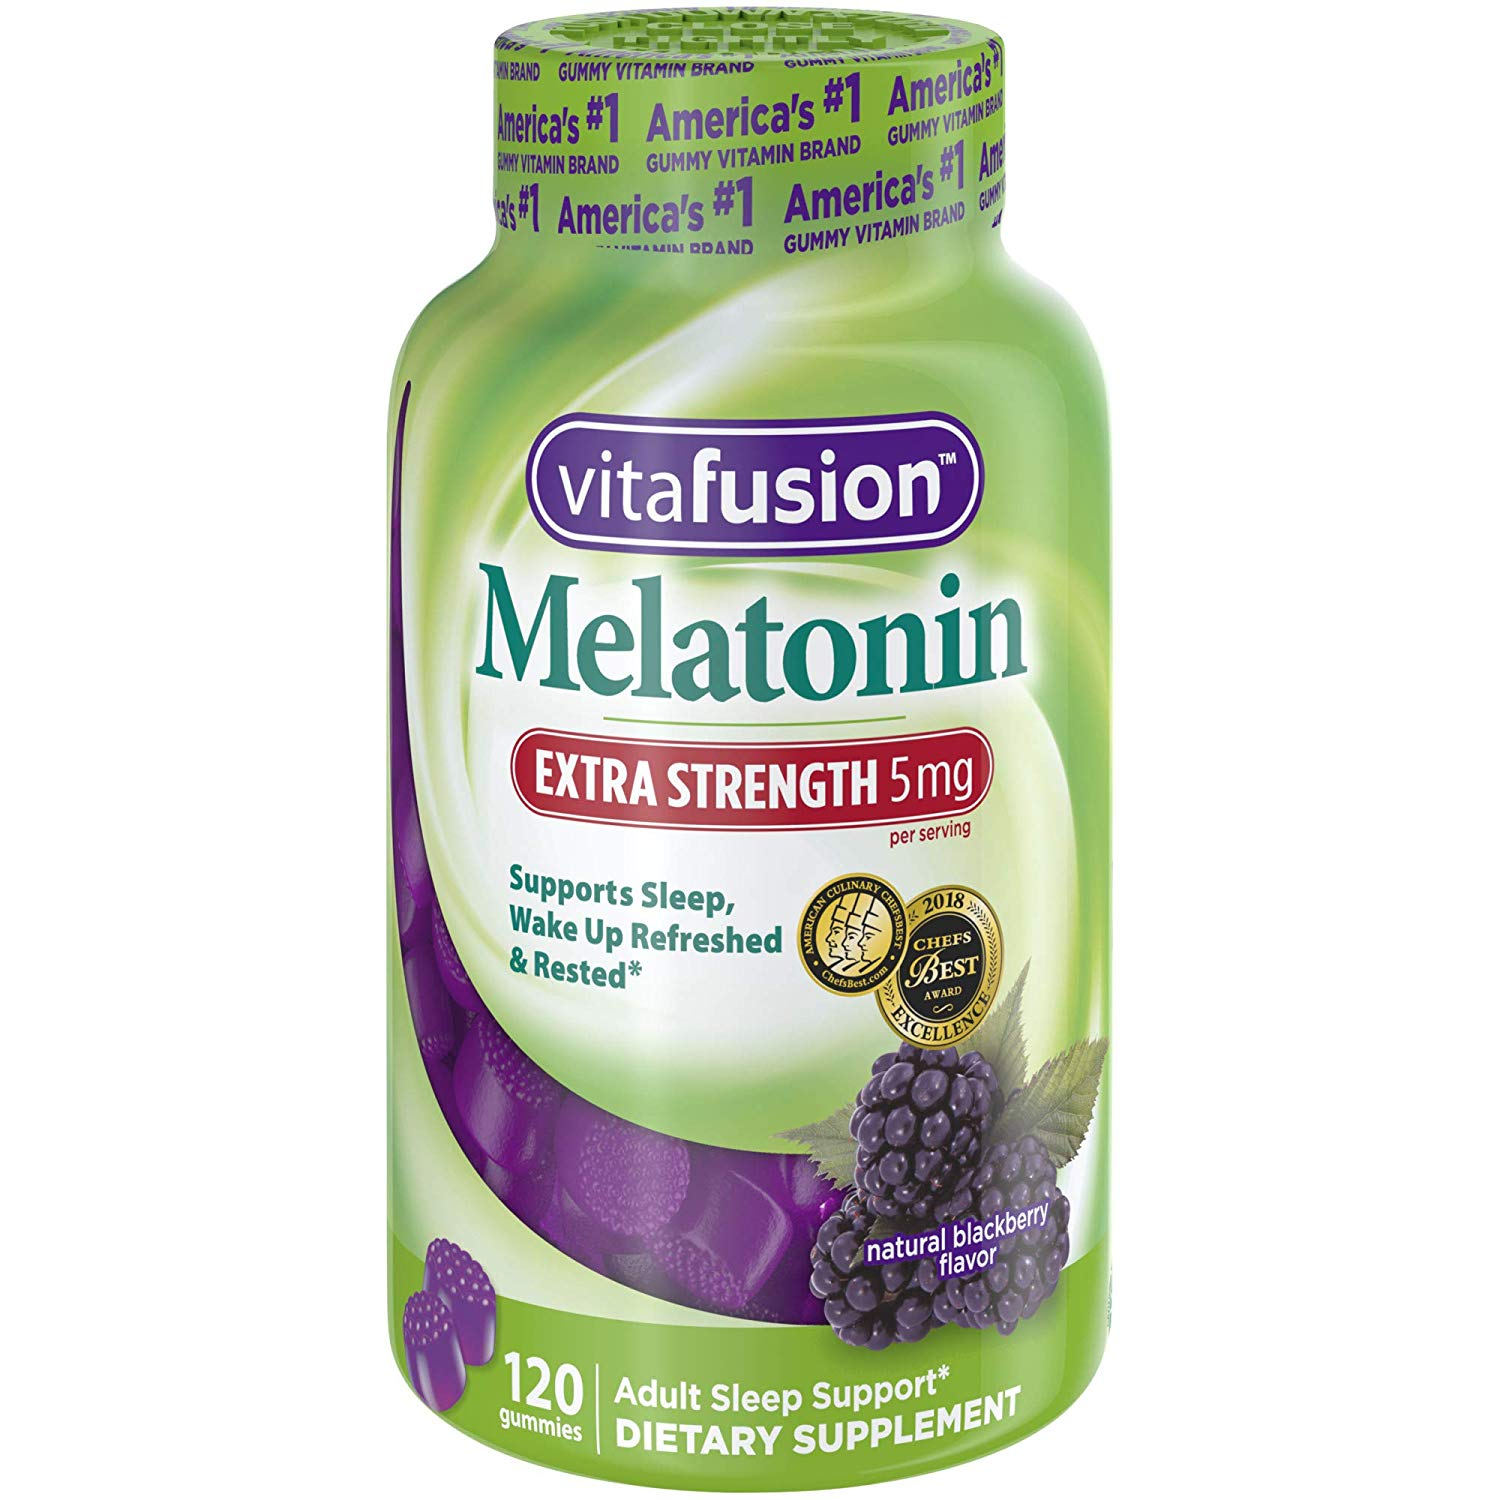 Vitafusion Natural Sleep Aids Review by www.snoremagazine.com